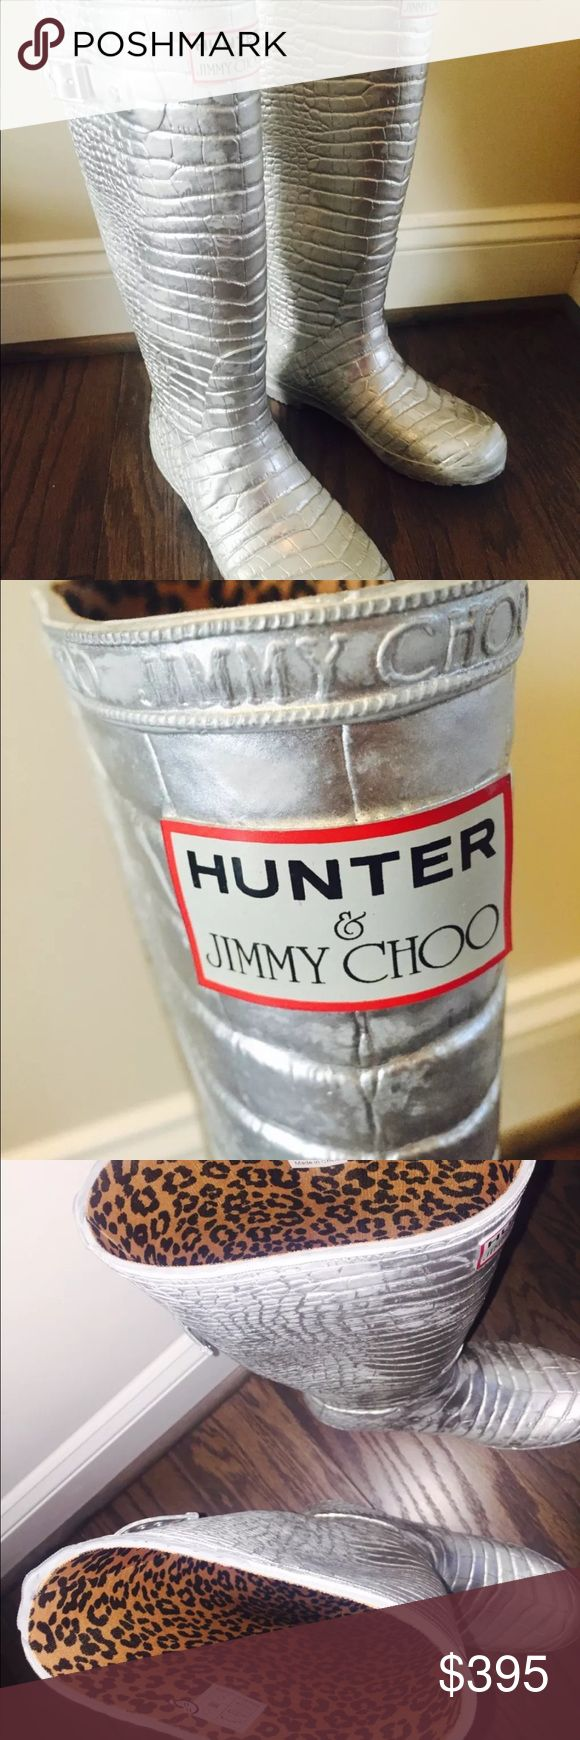 Brand New Jimmy Choo Hunter Rain boots Sold out!!! Sold out Jimmy Choo Hunter Rainboots Croc Silver Wellington US 8 new and never worn. Get them now in time for Fall and Winter! Hunter Boots Shoes Winter & Rain Boots